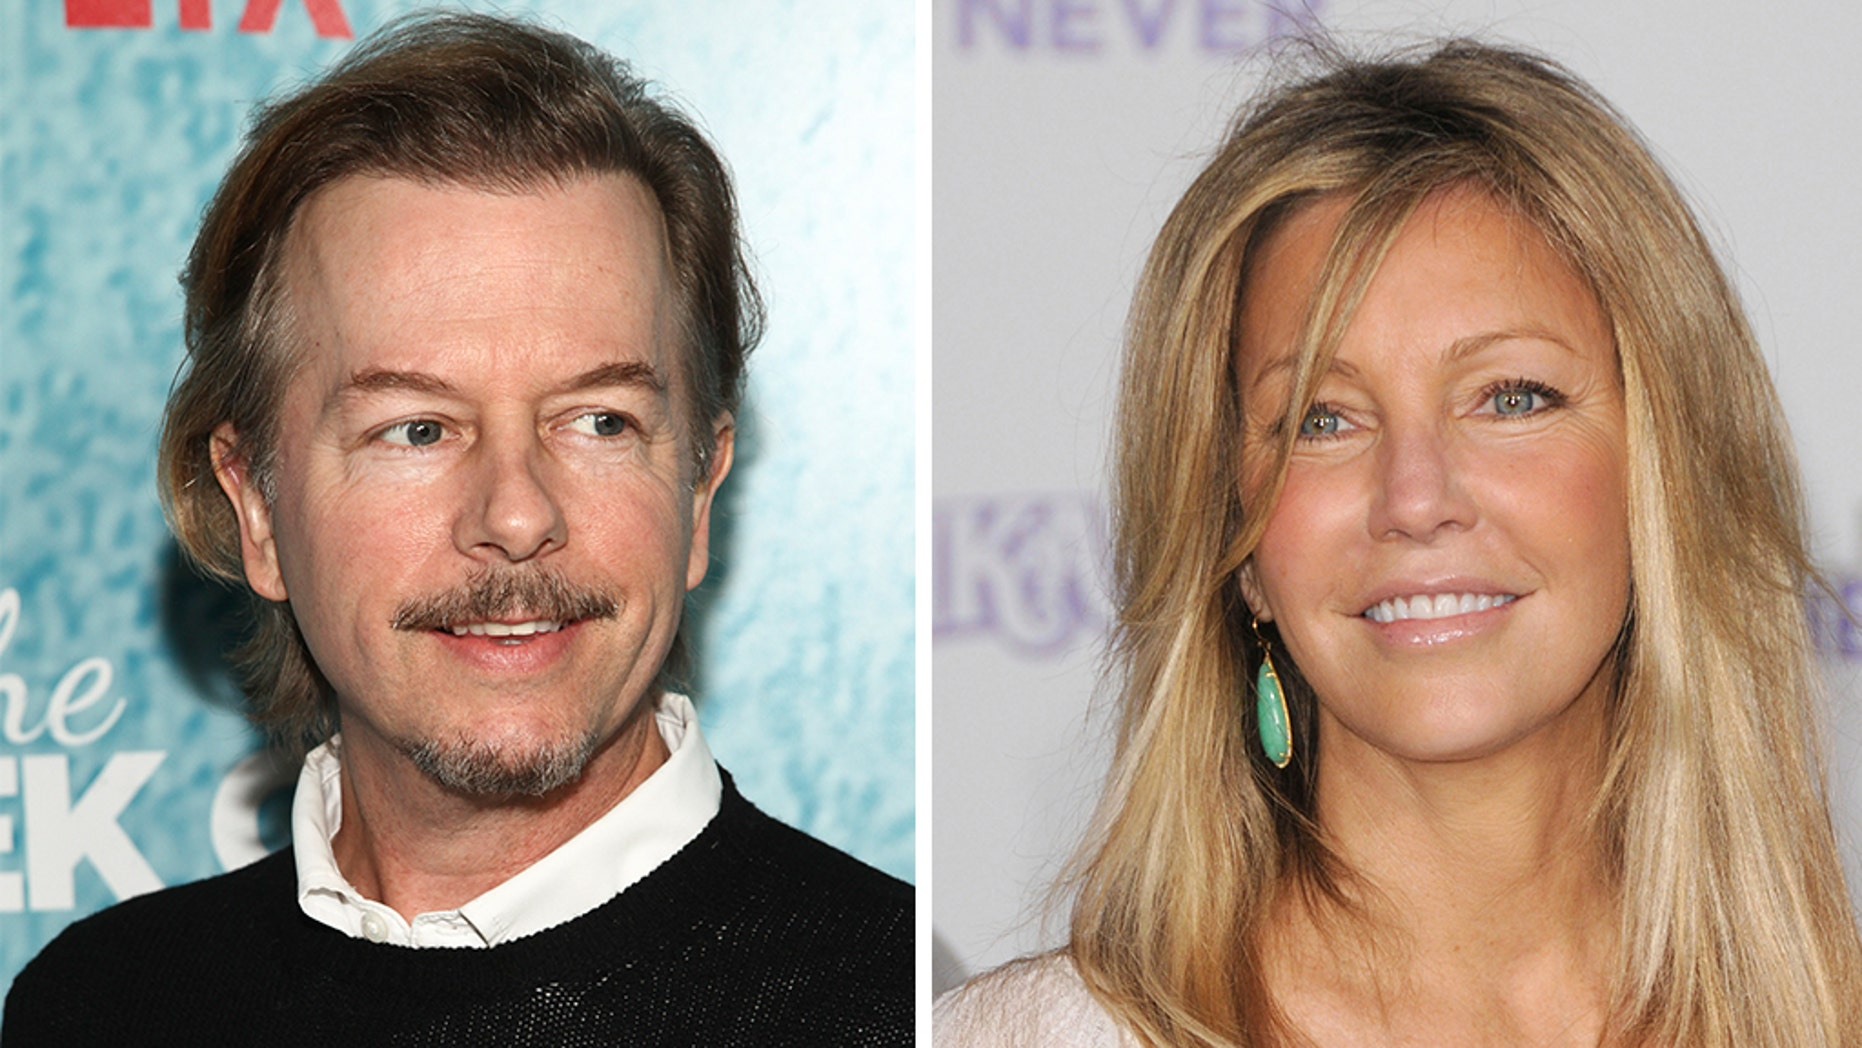 """David Spade reveals he stills talks to ex-girlfriend Heather Locklear, says she's in """"a tough situation."""""""